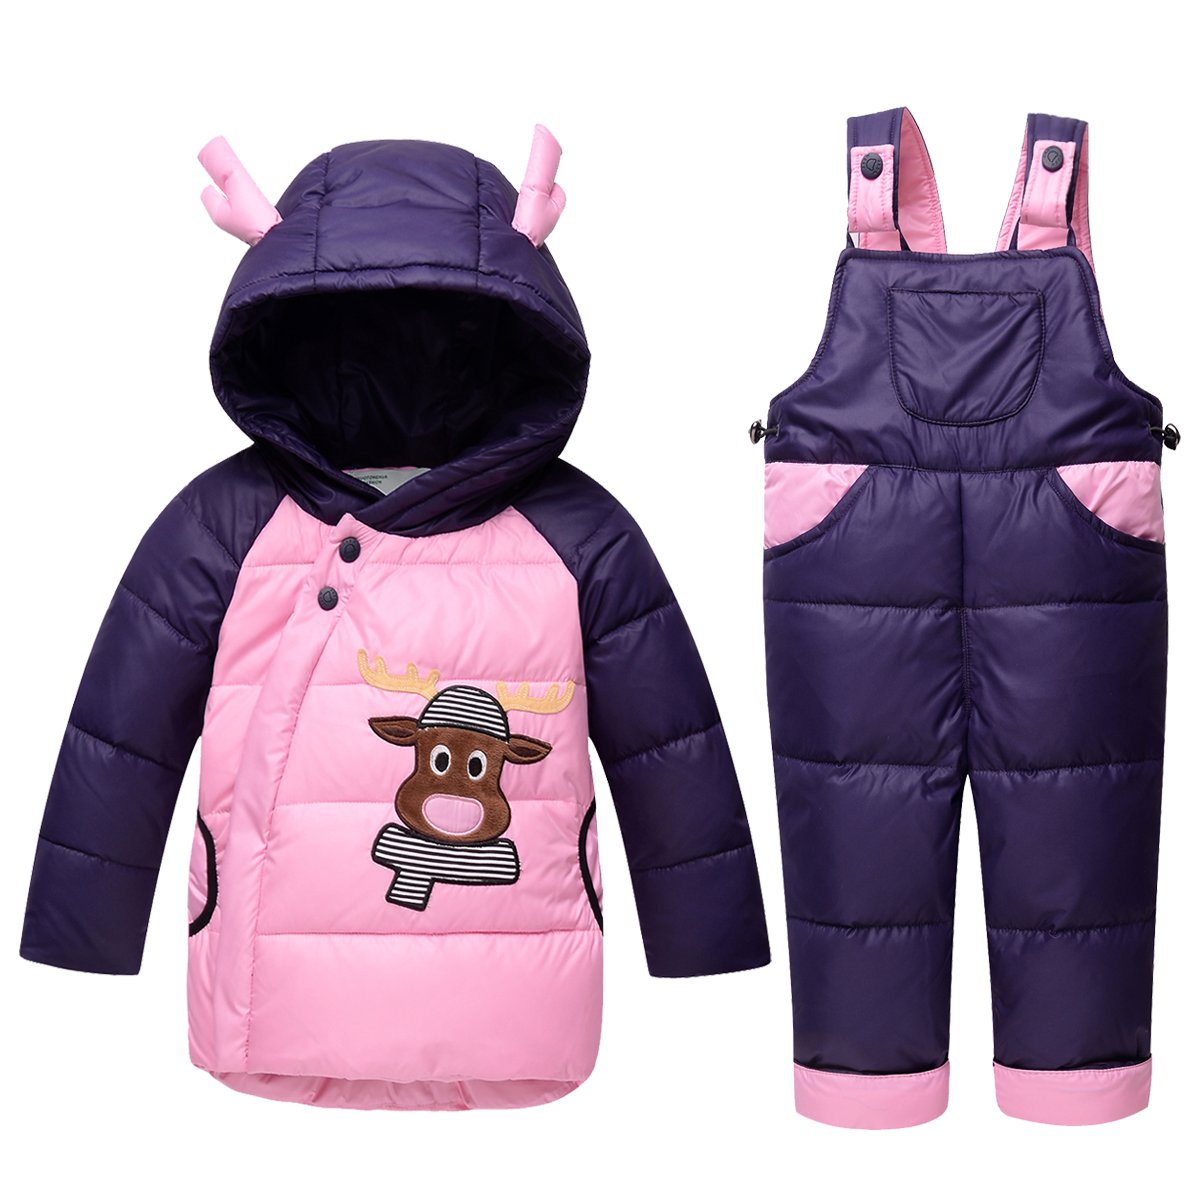 Unisex Infant Toddler Baby Boys Girls Winter Warm Cartoon Down Coat Cock Puffer Jacket Hoodie Snowsuit Thick Snow Bib Pants 2 Pieces Skiing Set Outwear, (1-4 Years)